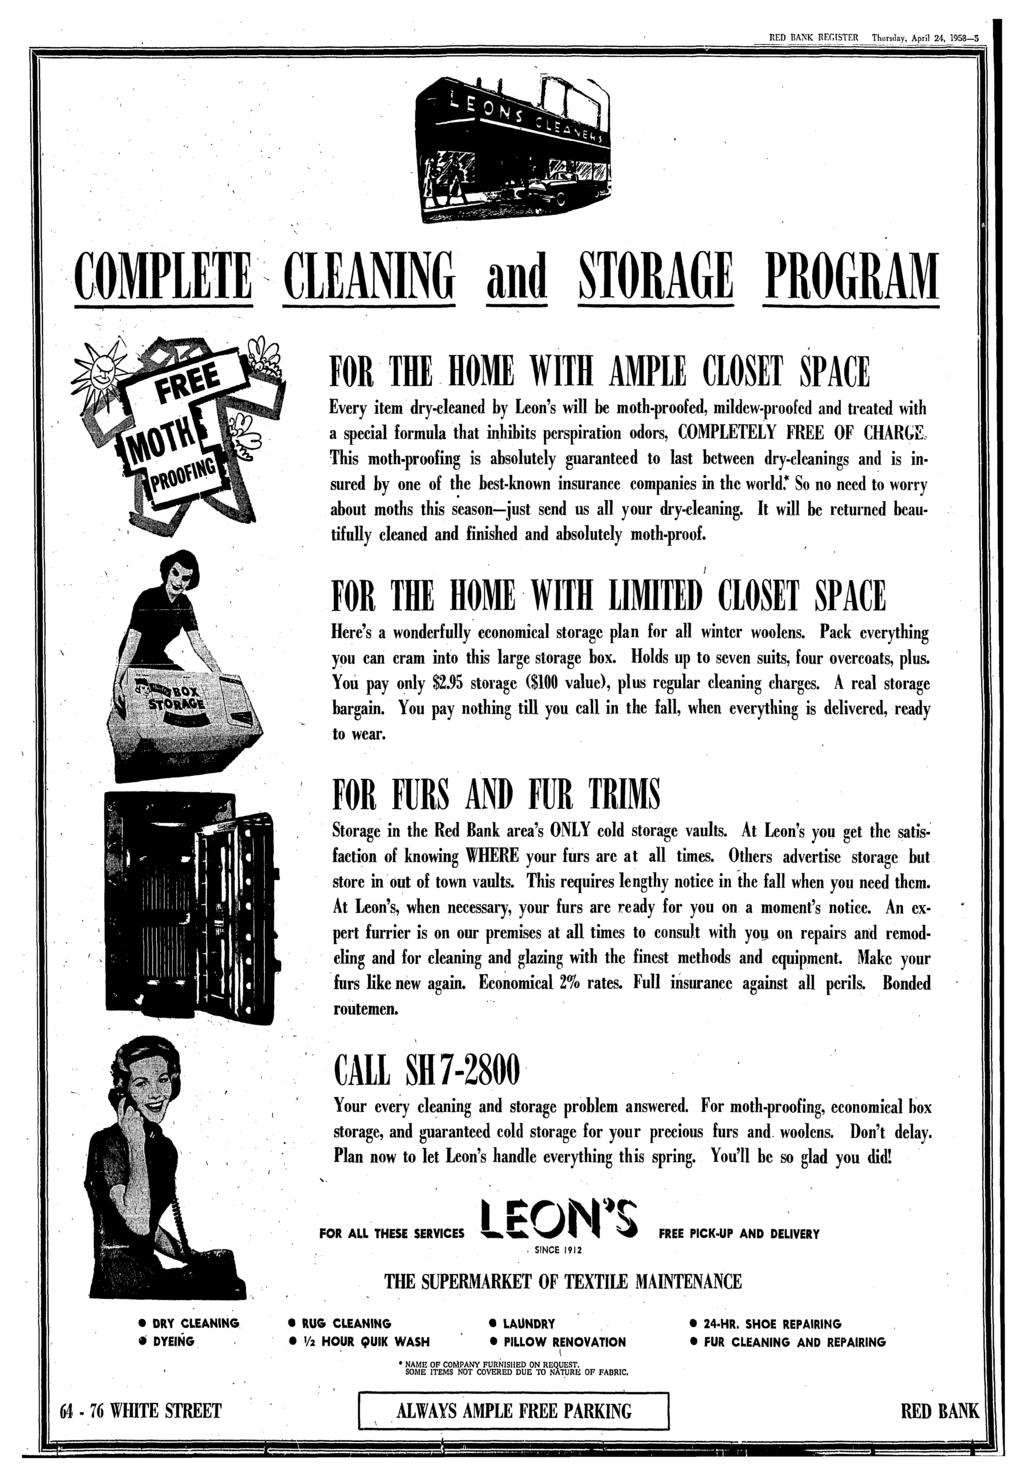 REGISTER Thursday, April 24, 1953 5 COMPLETE CLEANING and STORAGE PROGRAM FOR THE HOME WITH AMPLE CLOSET SPACE Every item dry-cleaned by Leon's will be moth-proofed, mildew-proofed and treated with a